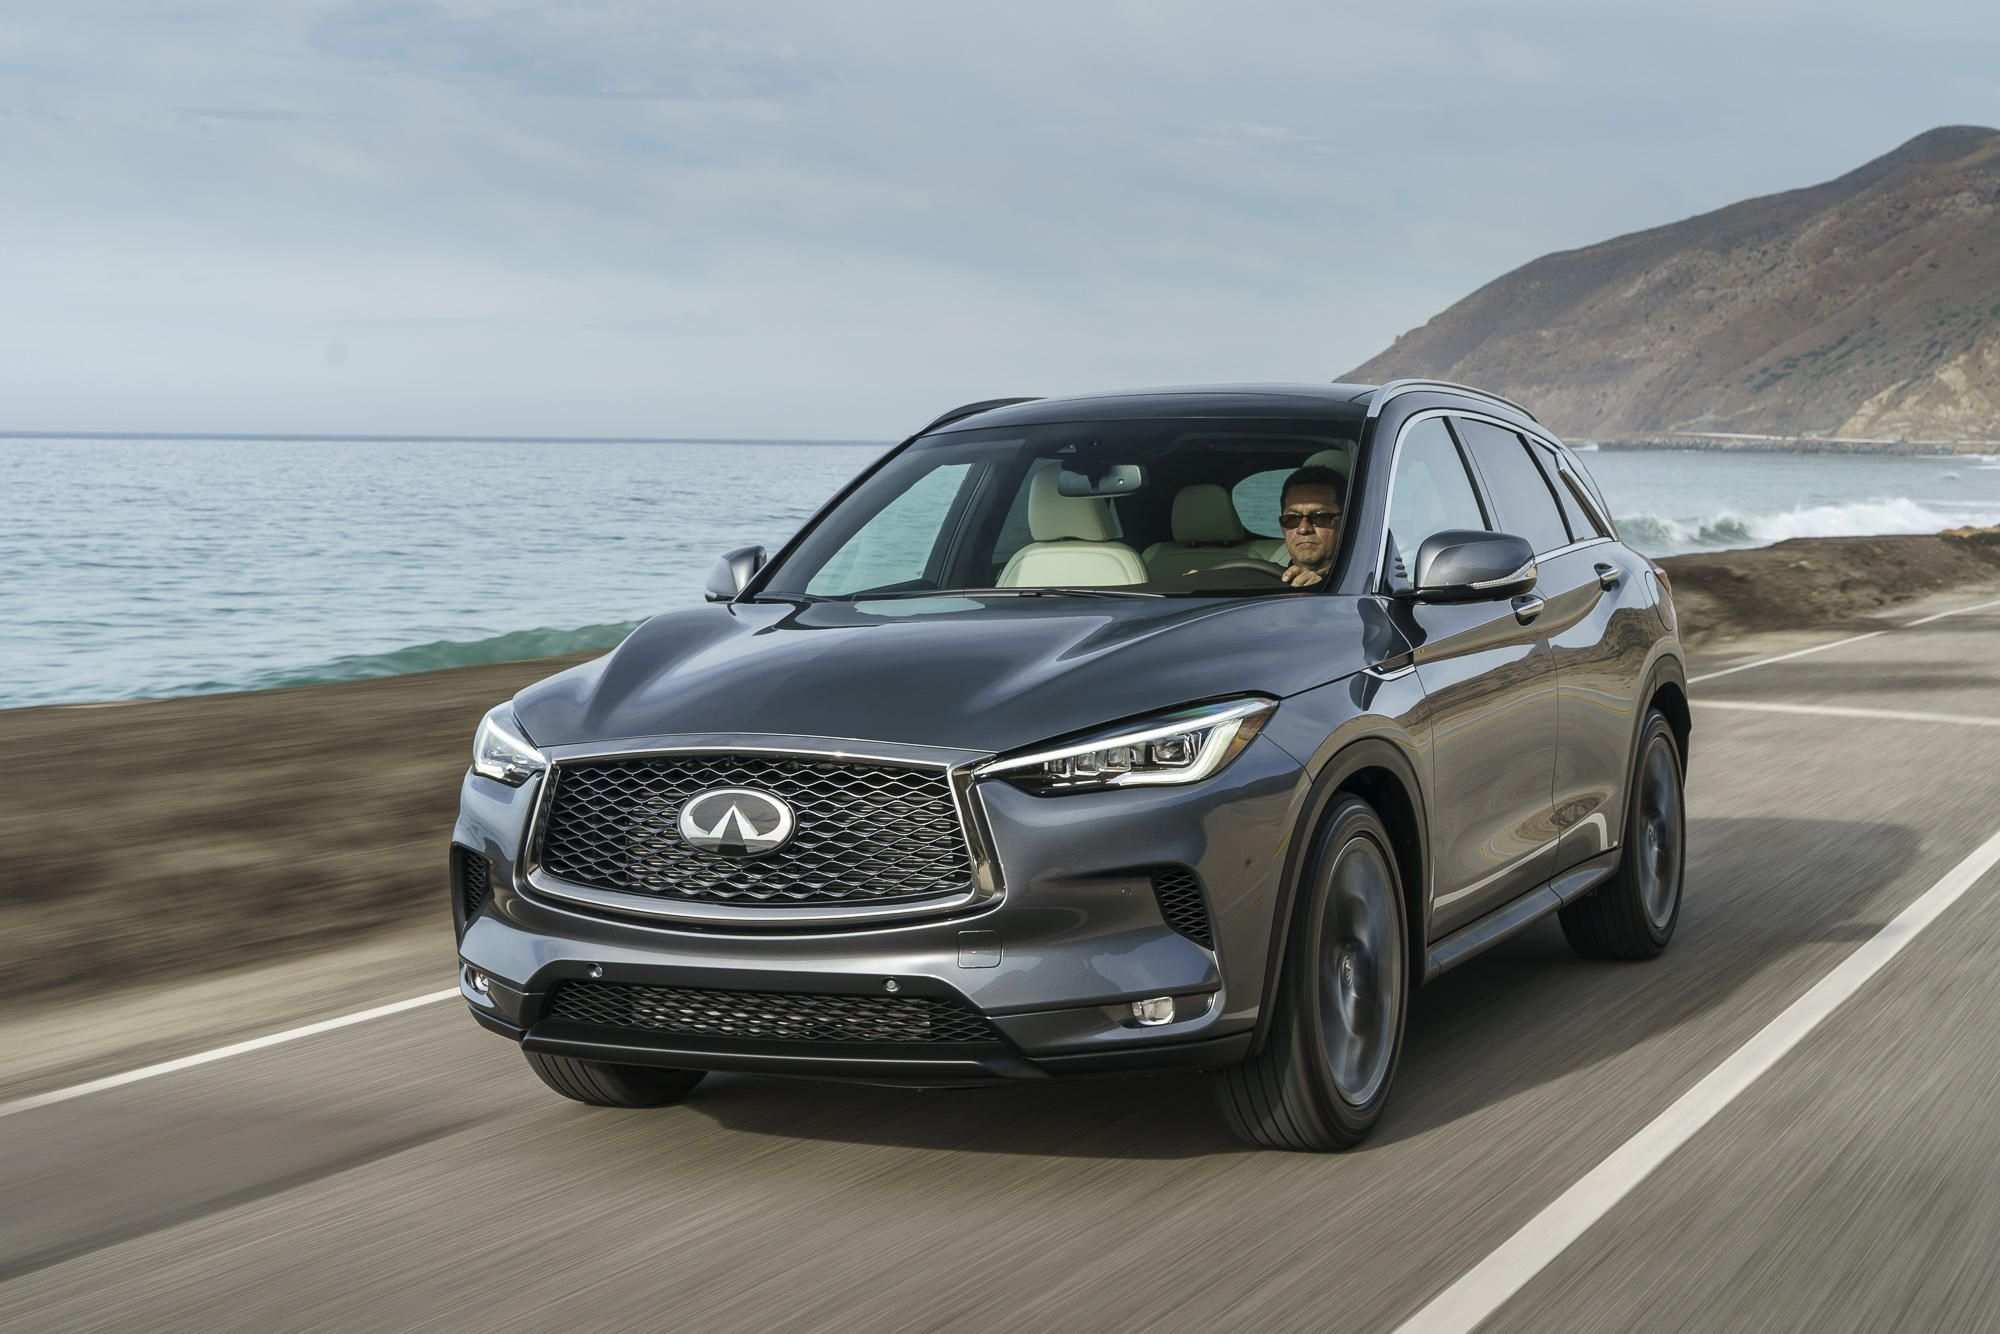 18 The Best 2020 Infiniti QX50 Photos